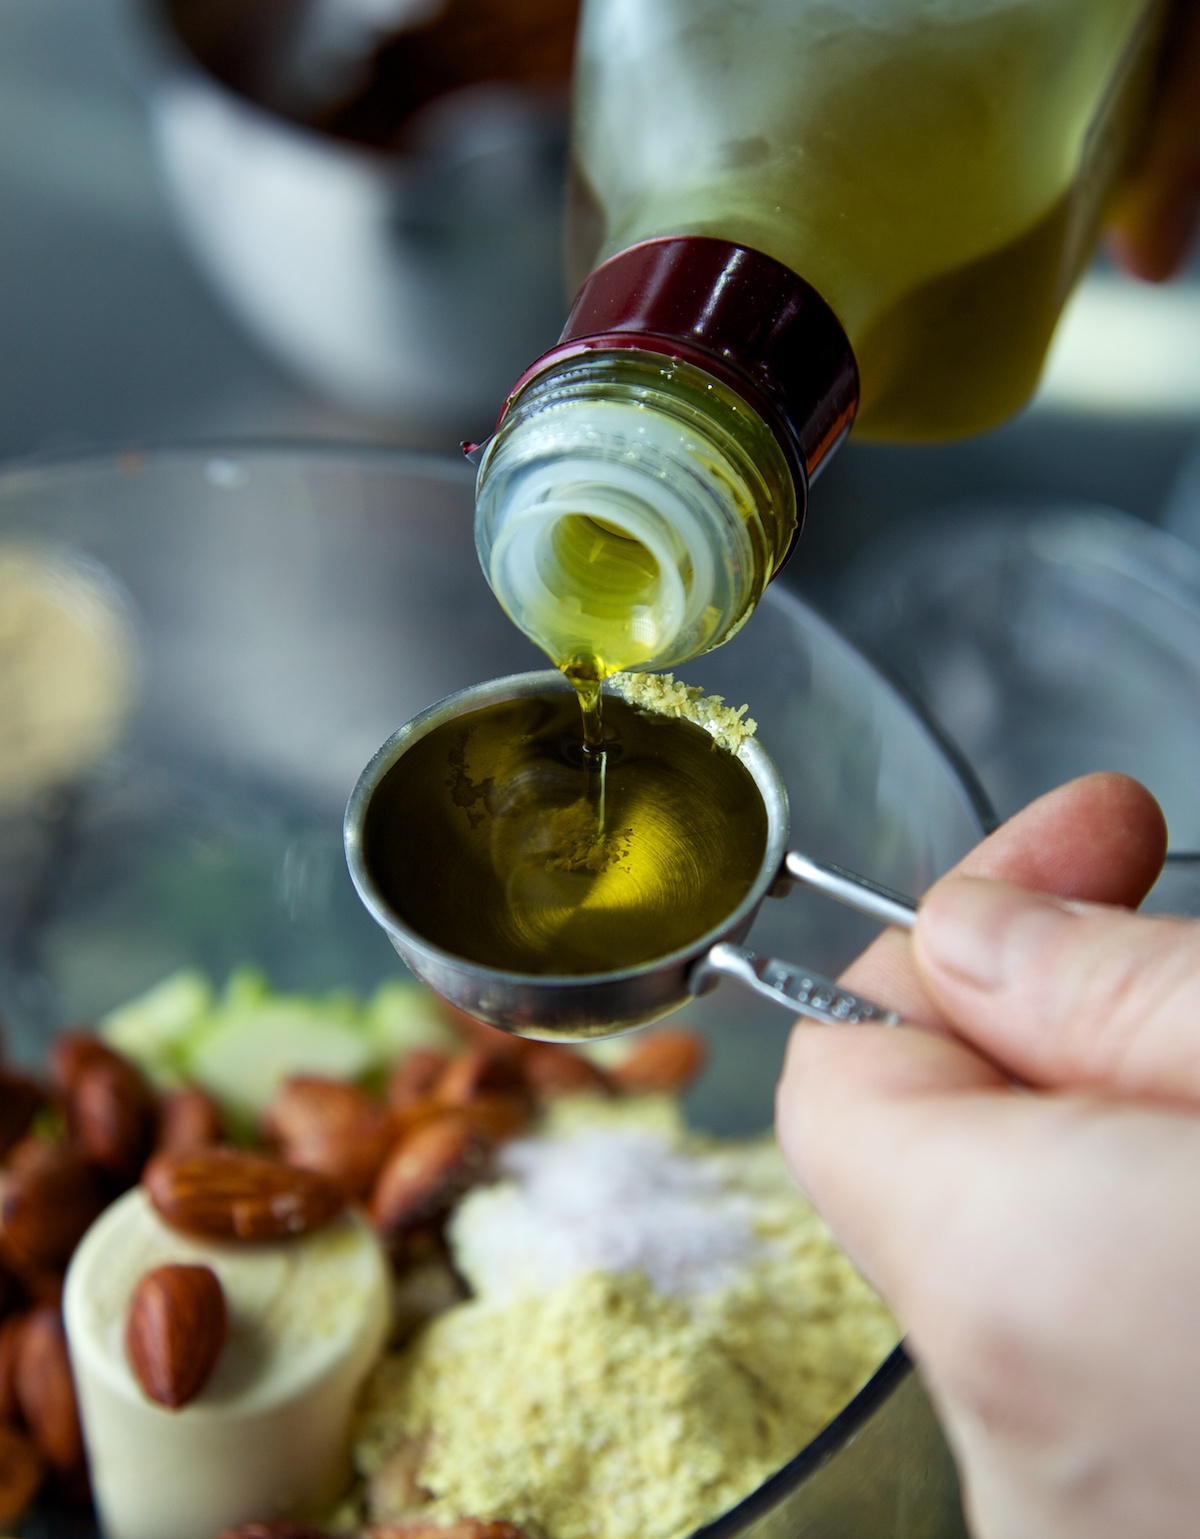 someone pouring olive oil into a measuring spoon